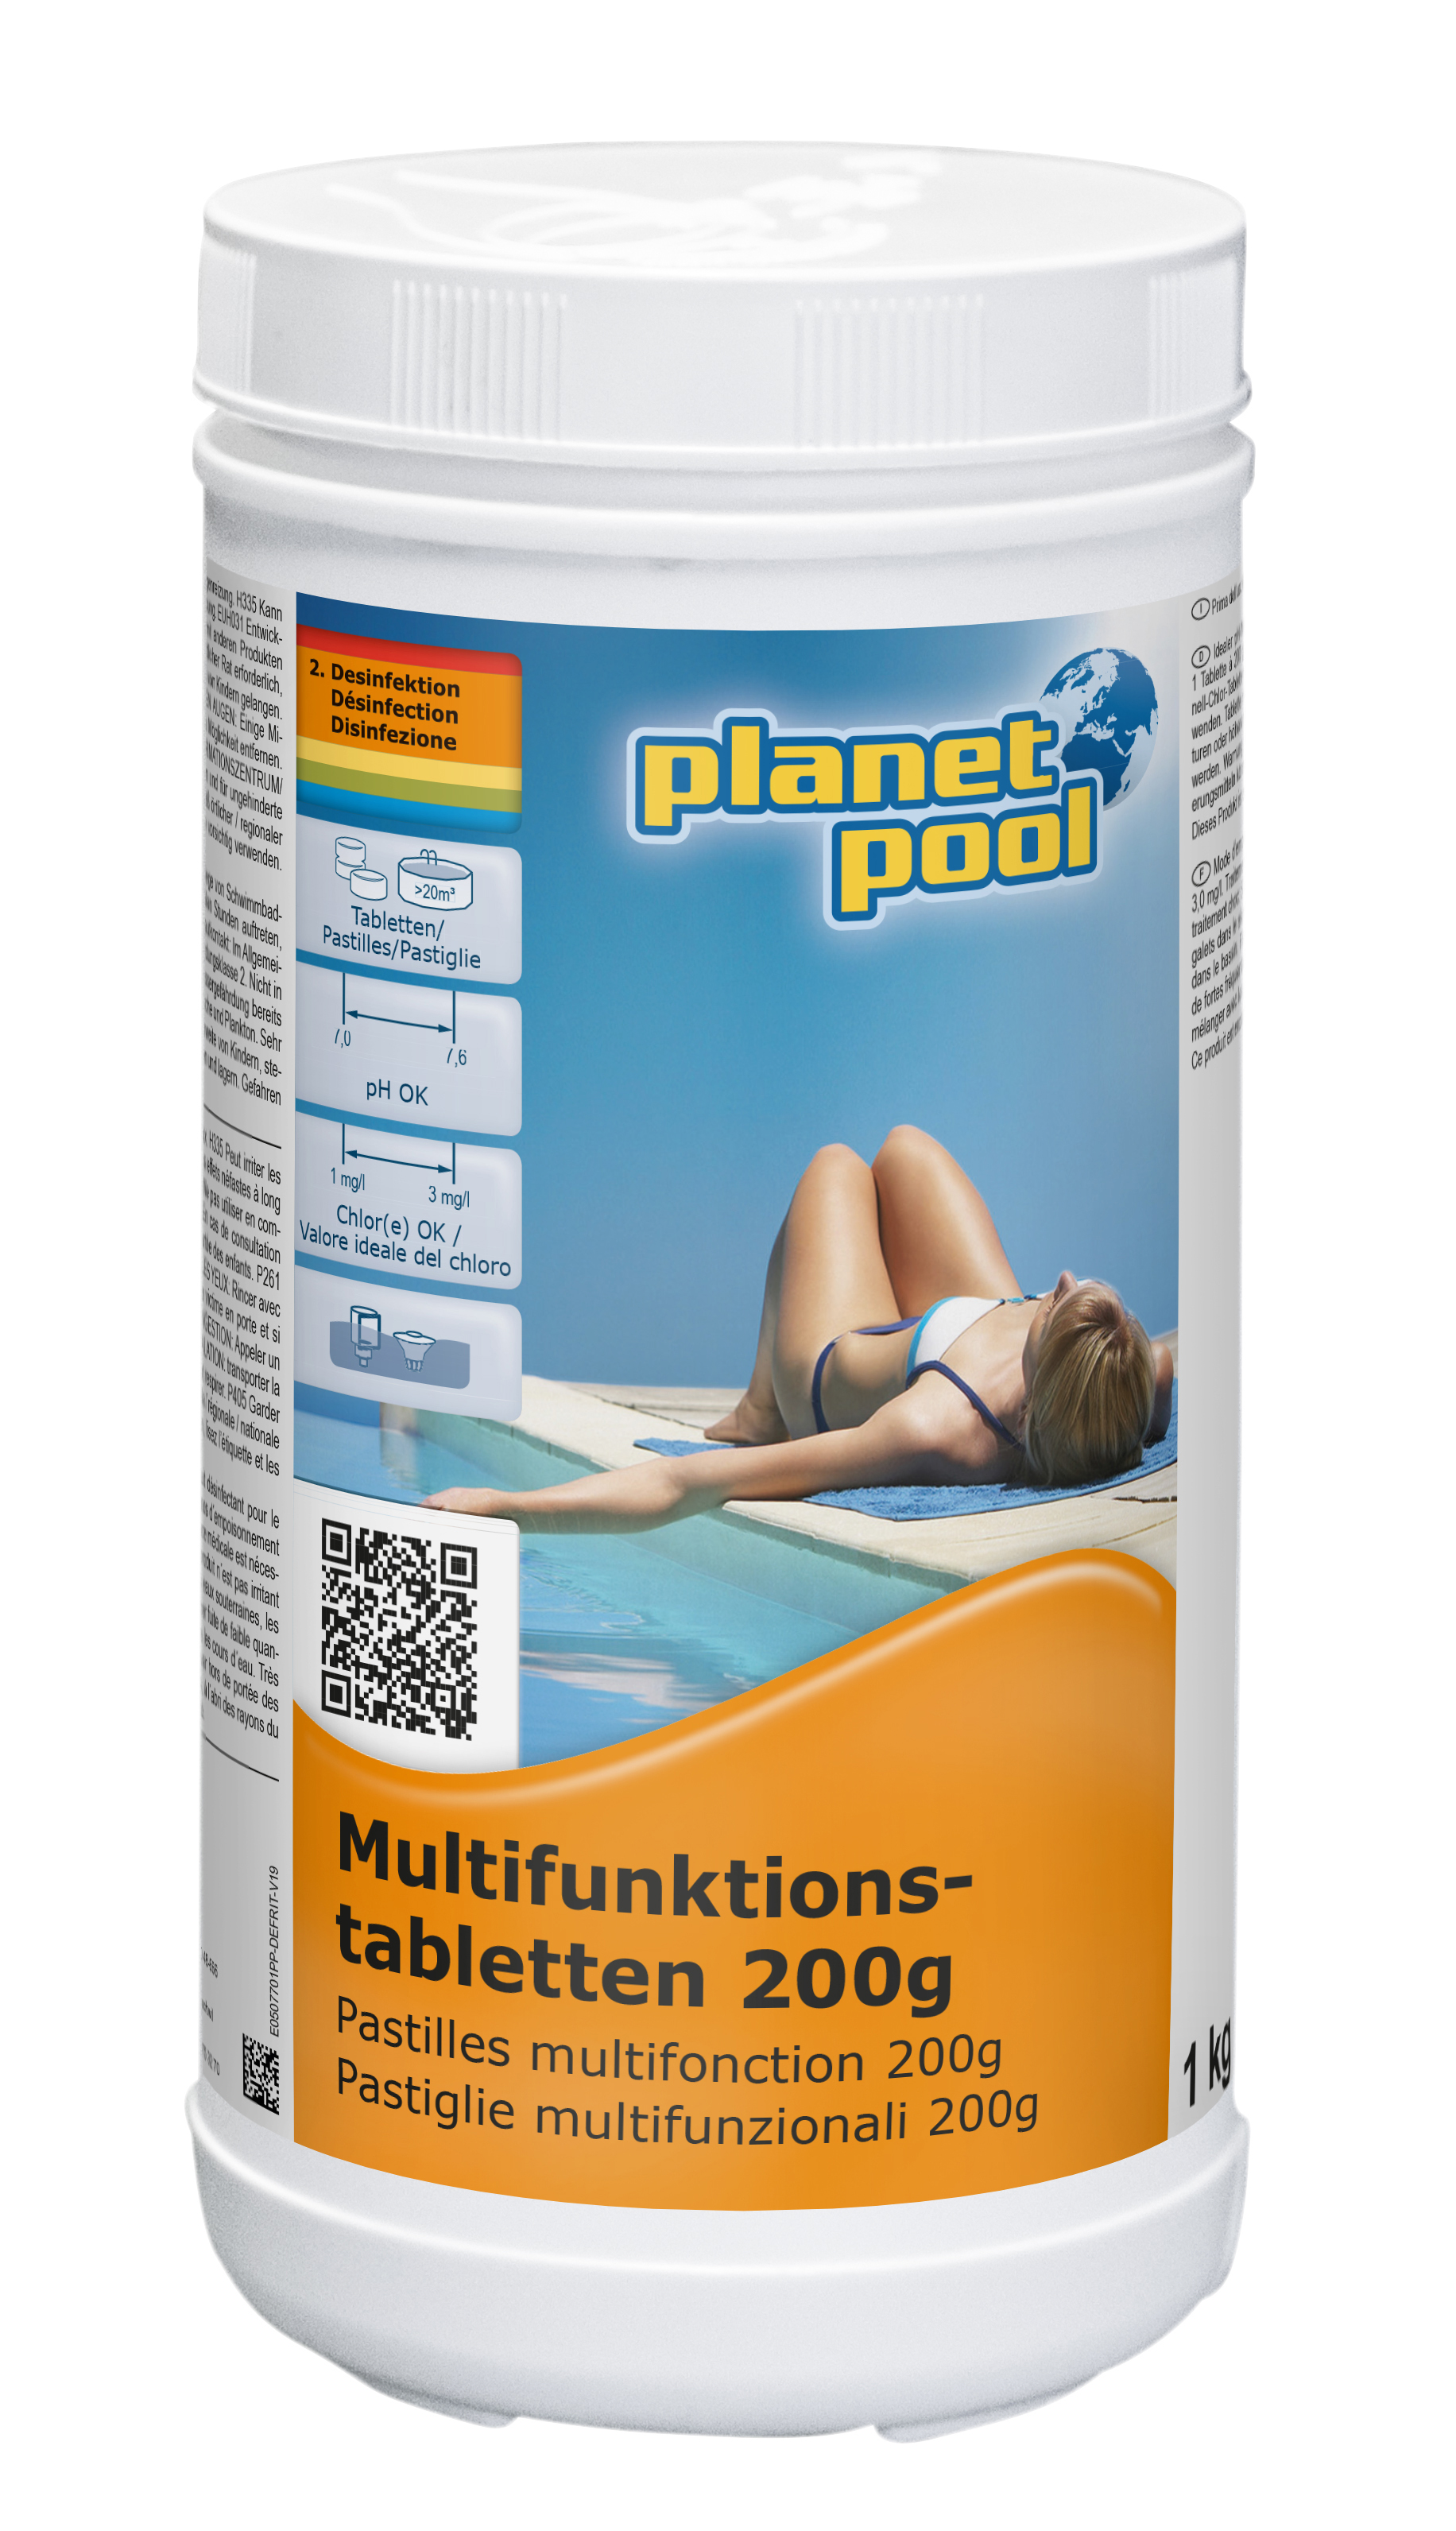 PLANET POOL Multifunktions-Tabletten 200g 1 kg